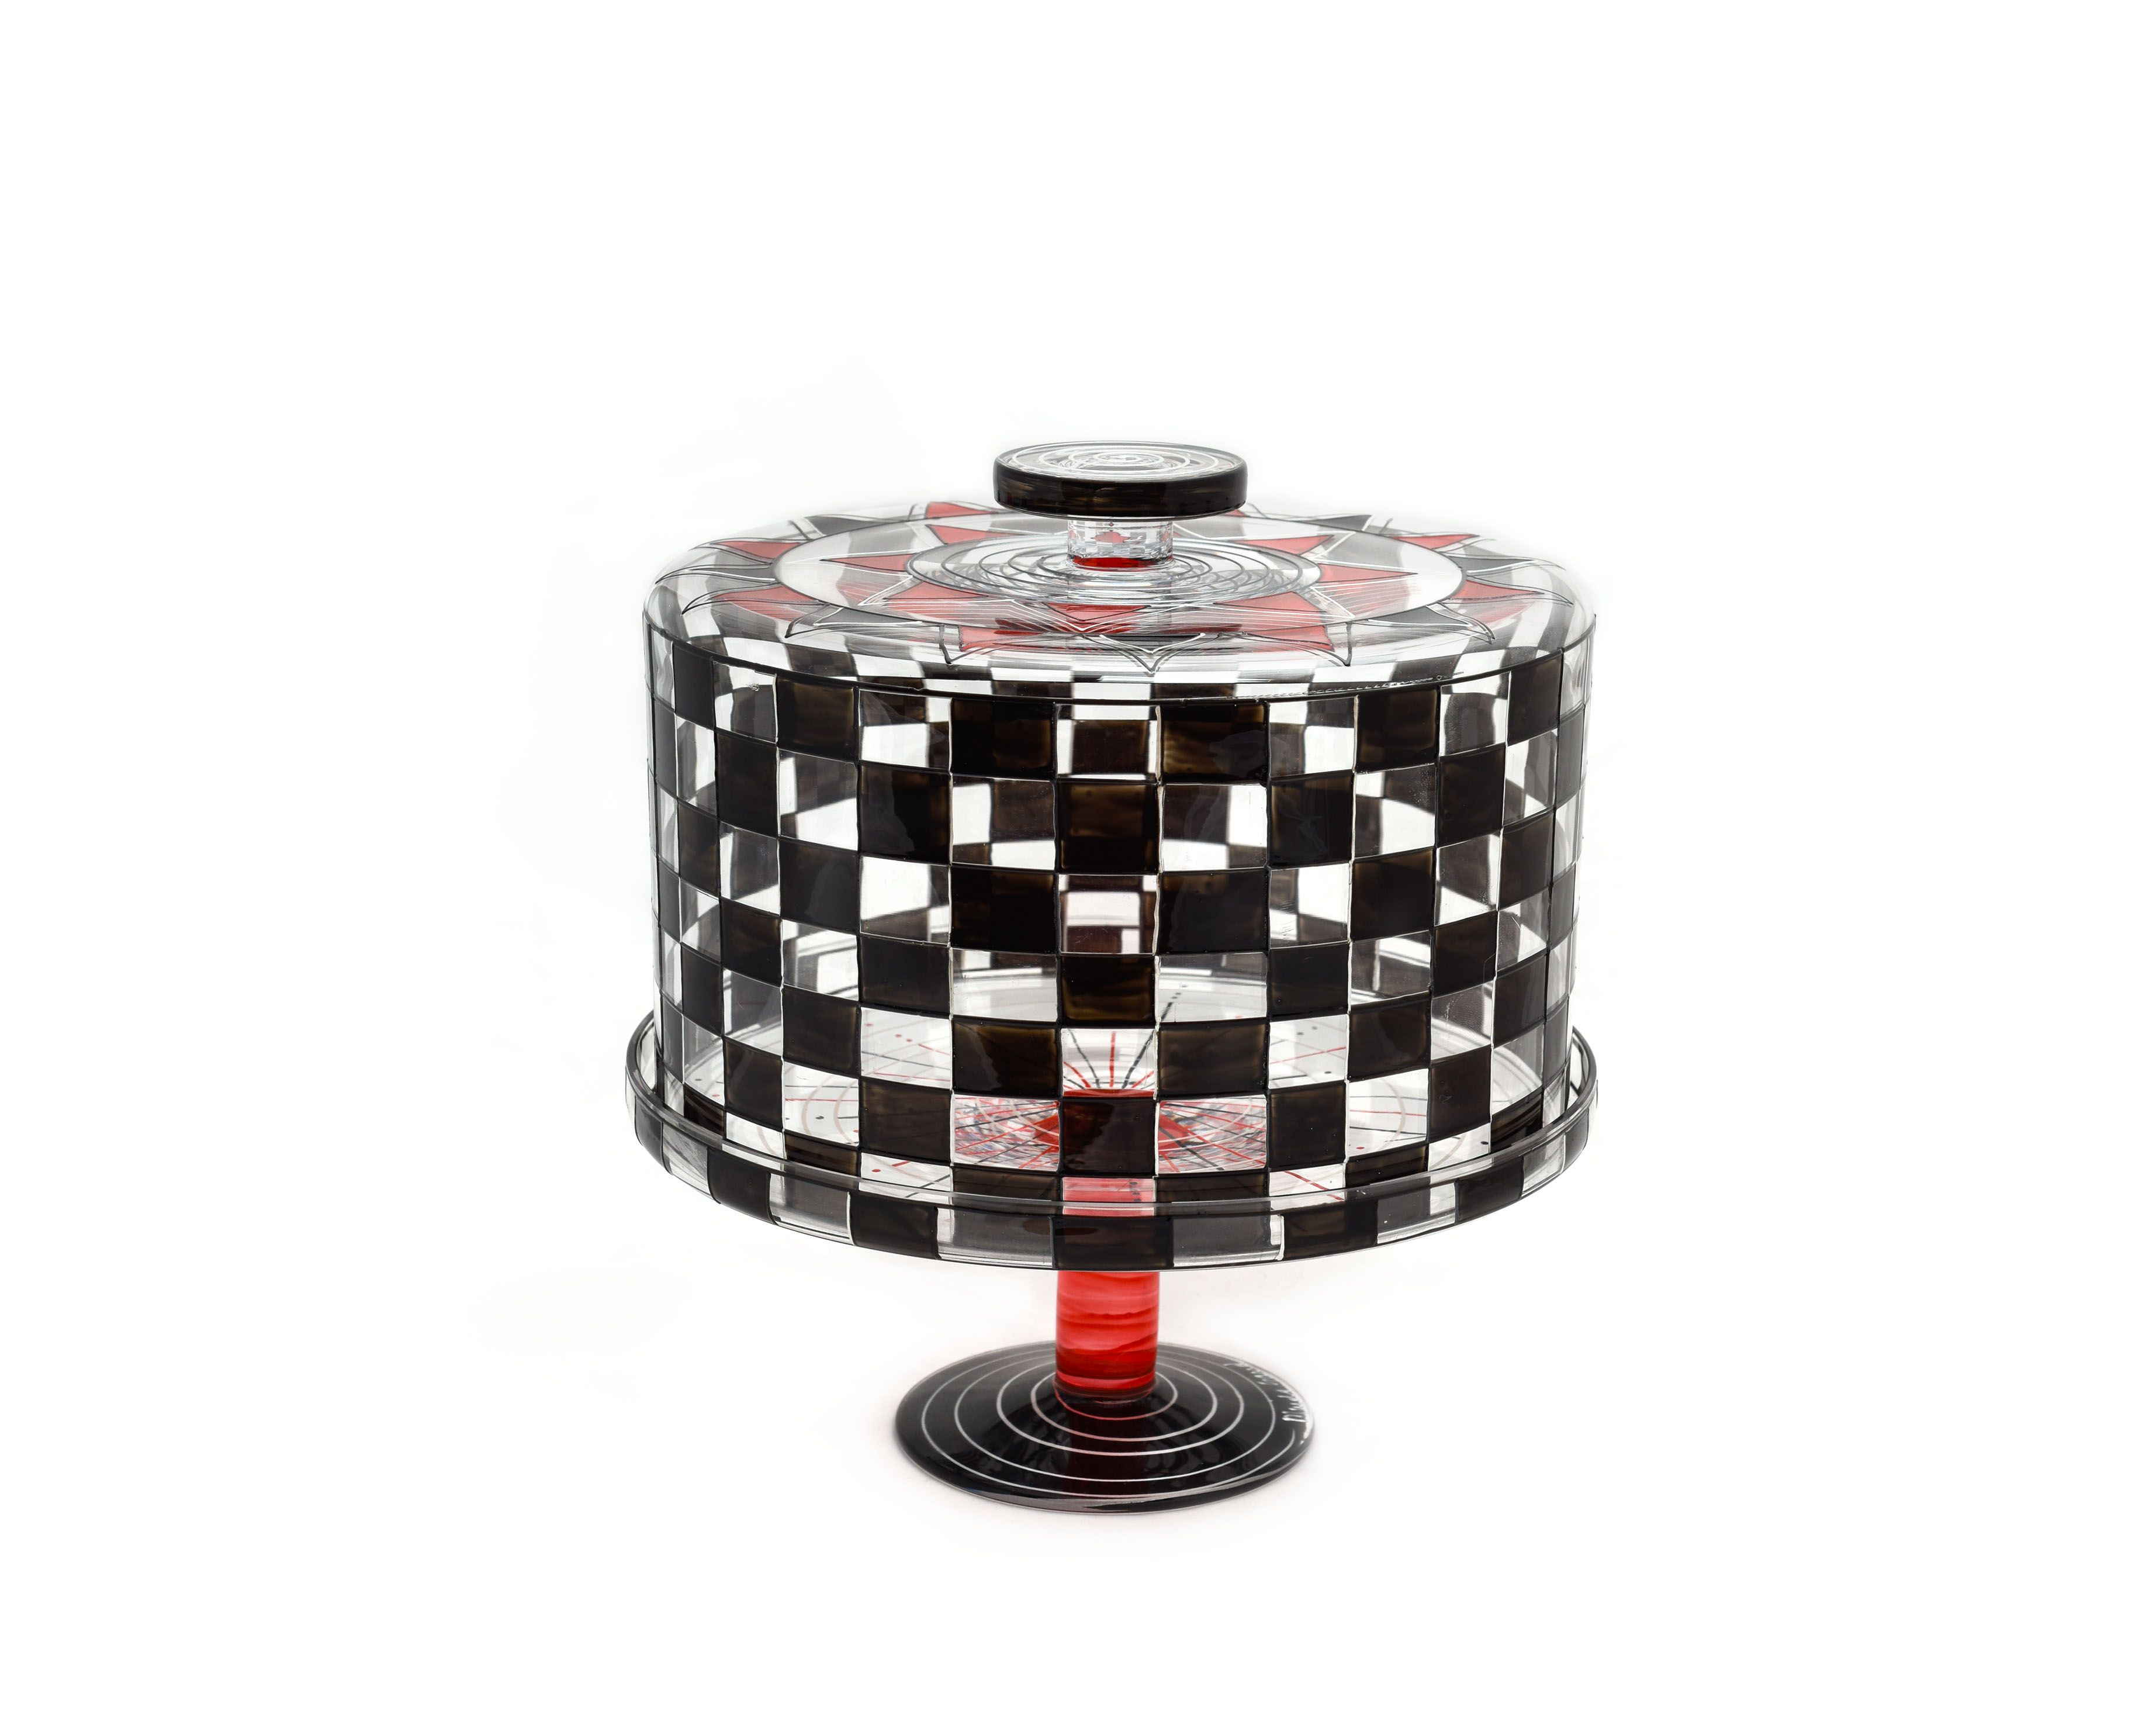 Cake stand and dome black checkered design with images